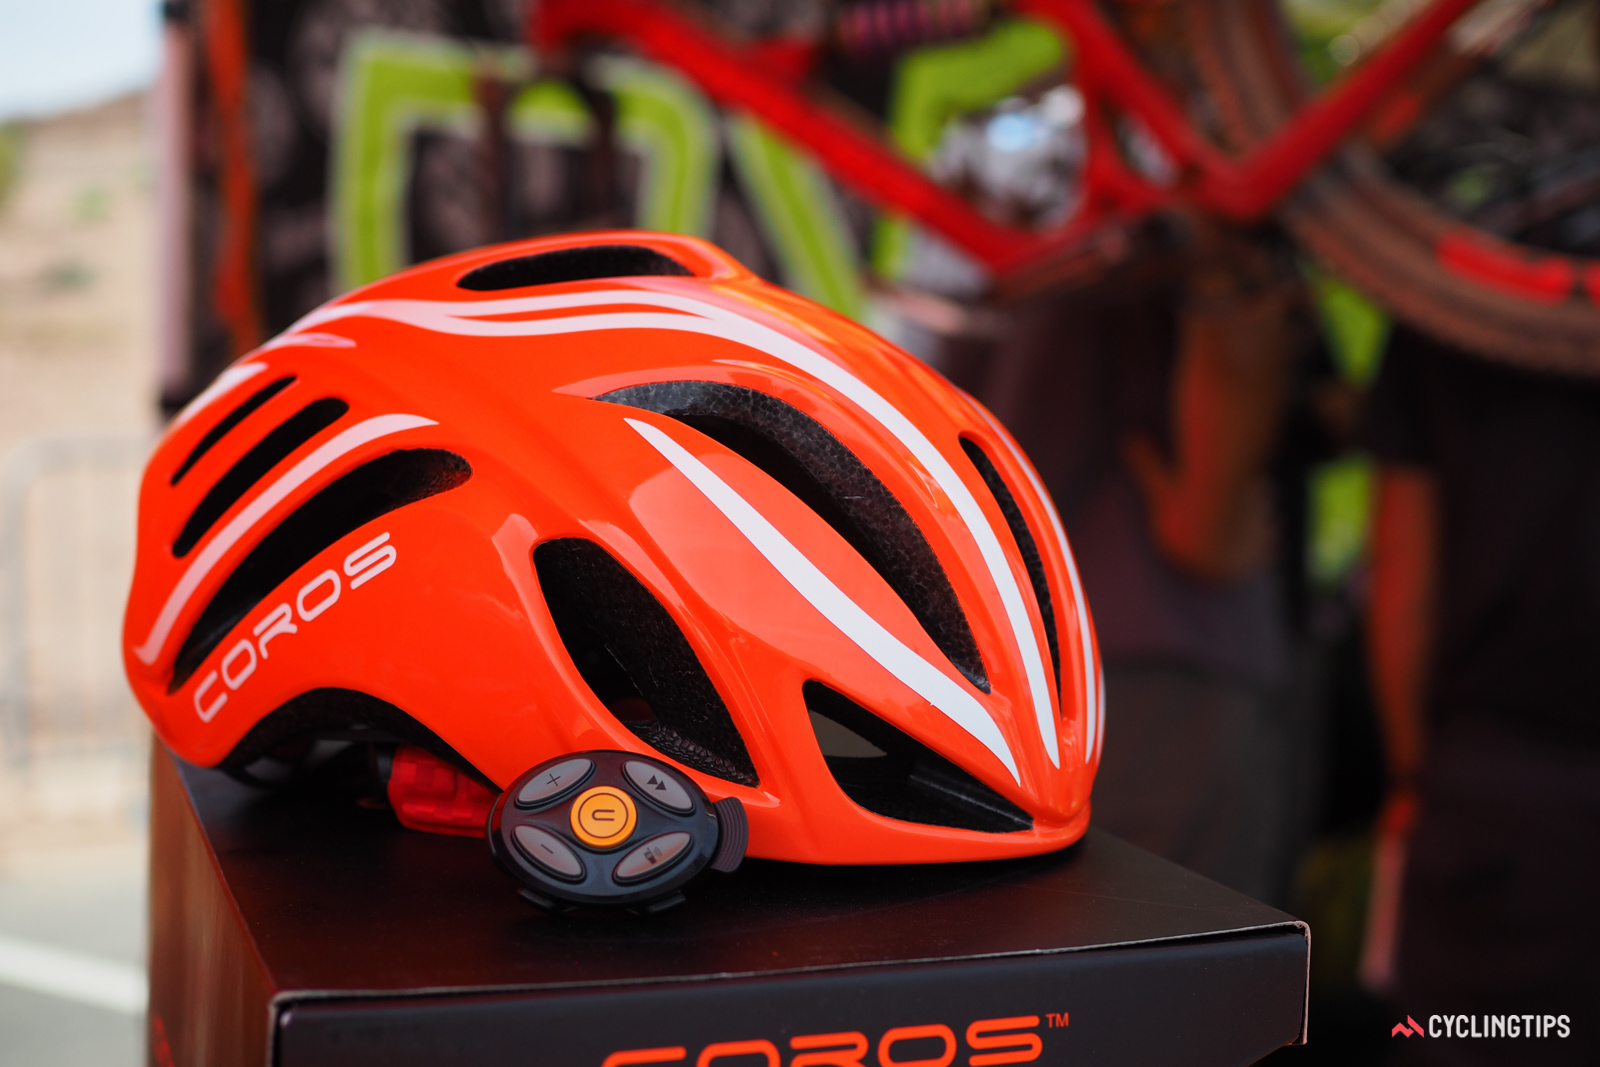 Upstart company Coros introduced a new connected road helmet, complete with wireless Bluetooth connectivity, bone conduction headphones, and a microphone for streaming audio, navigation prompts, and even taking calls on the go. Retail price is US$200. And yes, it looks an awful lot like a Specialized S-Works Evade helmet, but the company insists the resemblance is unintentional.